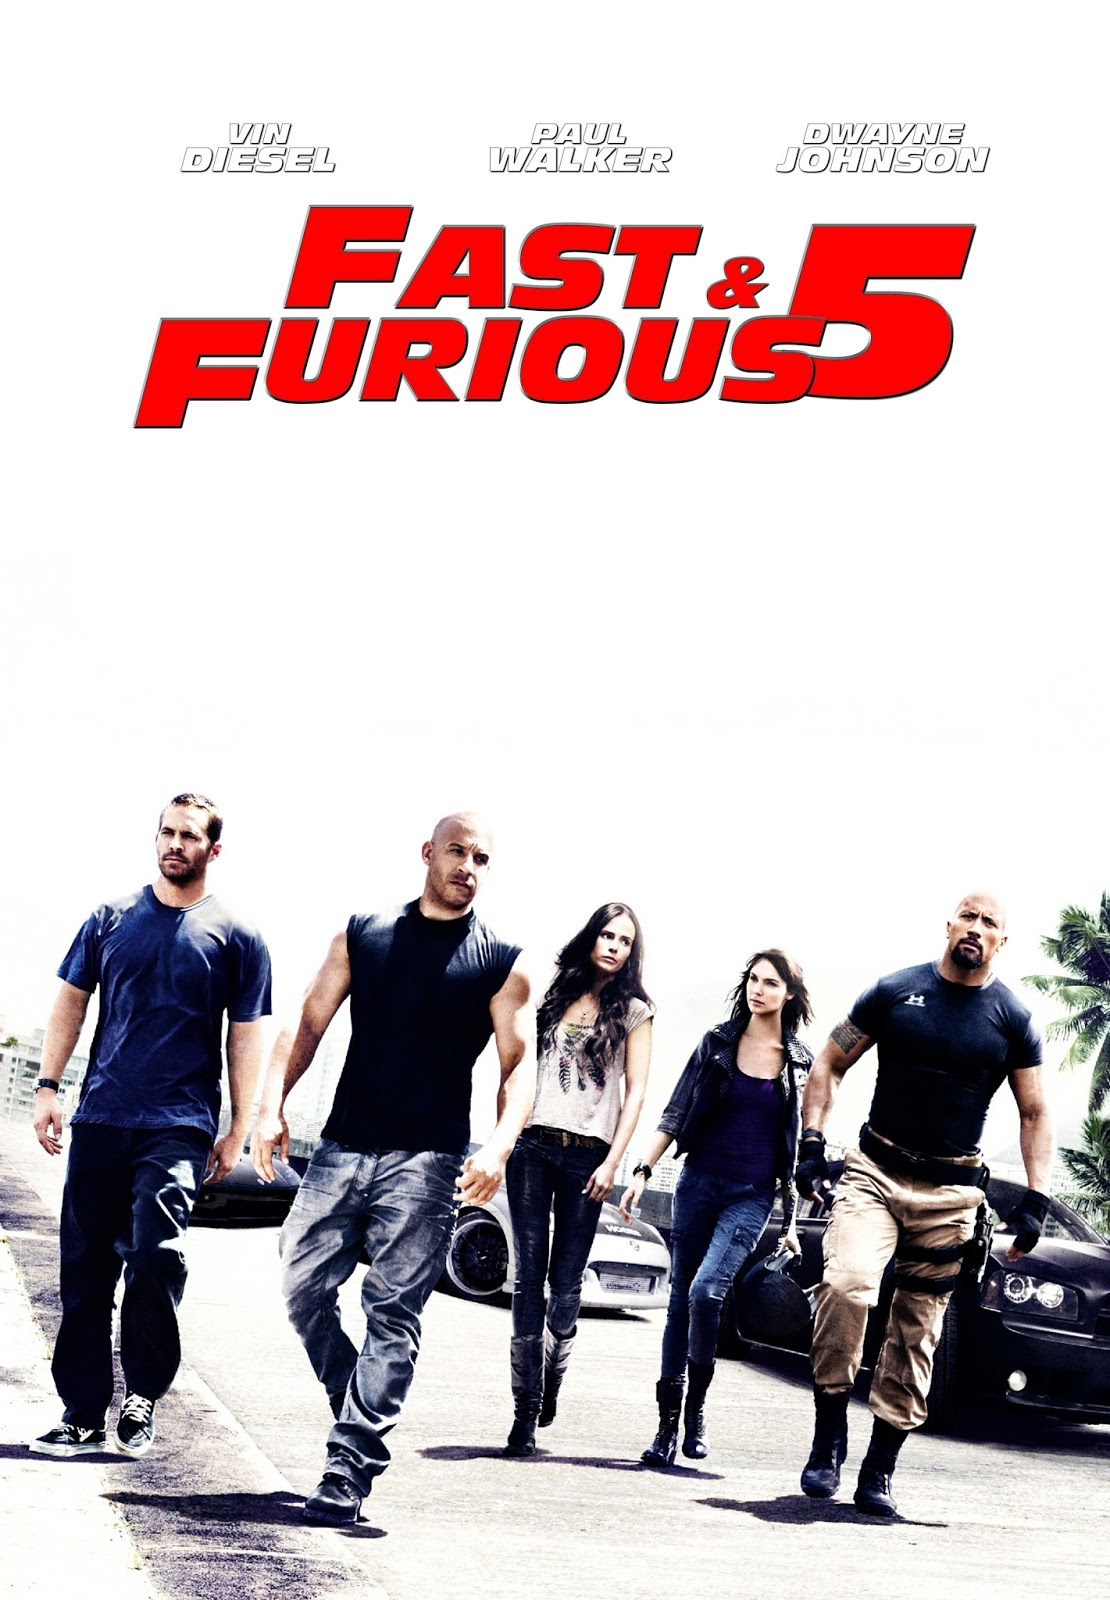 fast and furious 1 6 2001 2013 movie 200mb toms gts. Black Bedroom Furniture Sets. Home Design Ideas